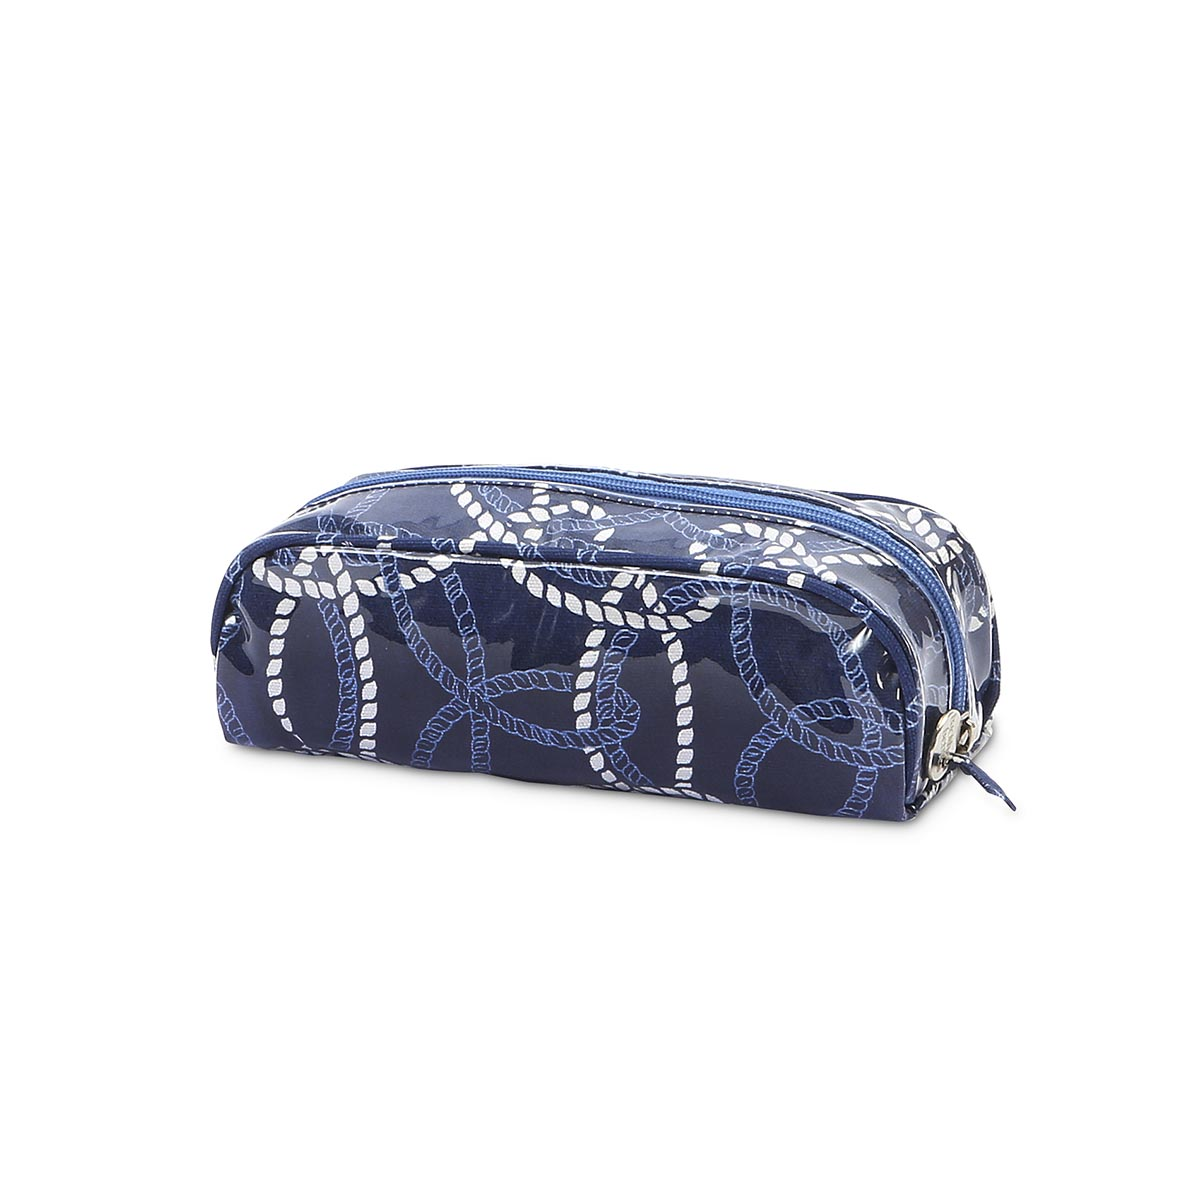 knot-ical pencil and brush pouch